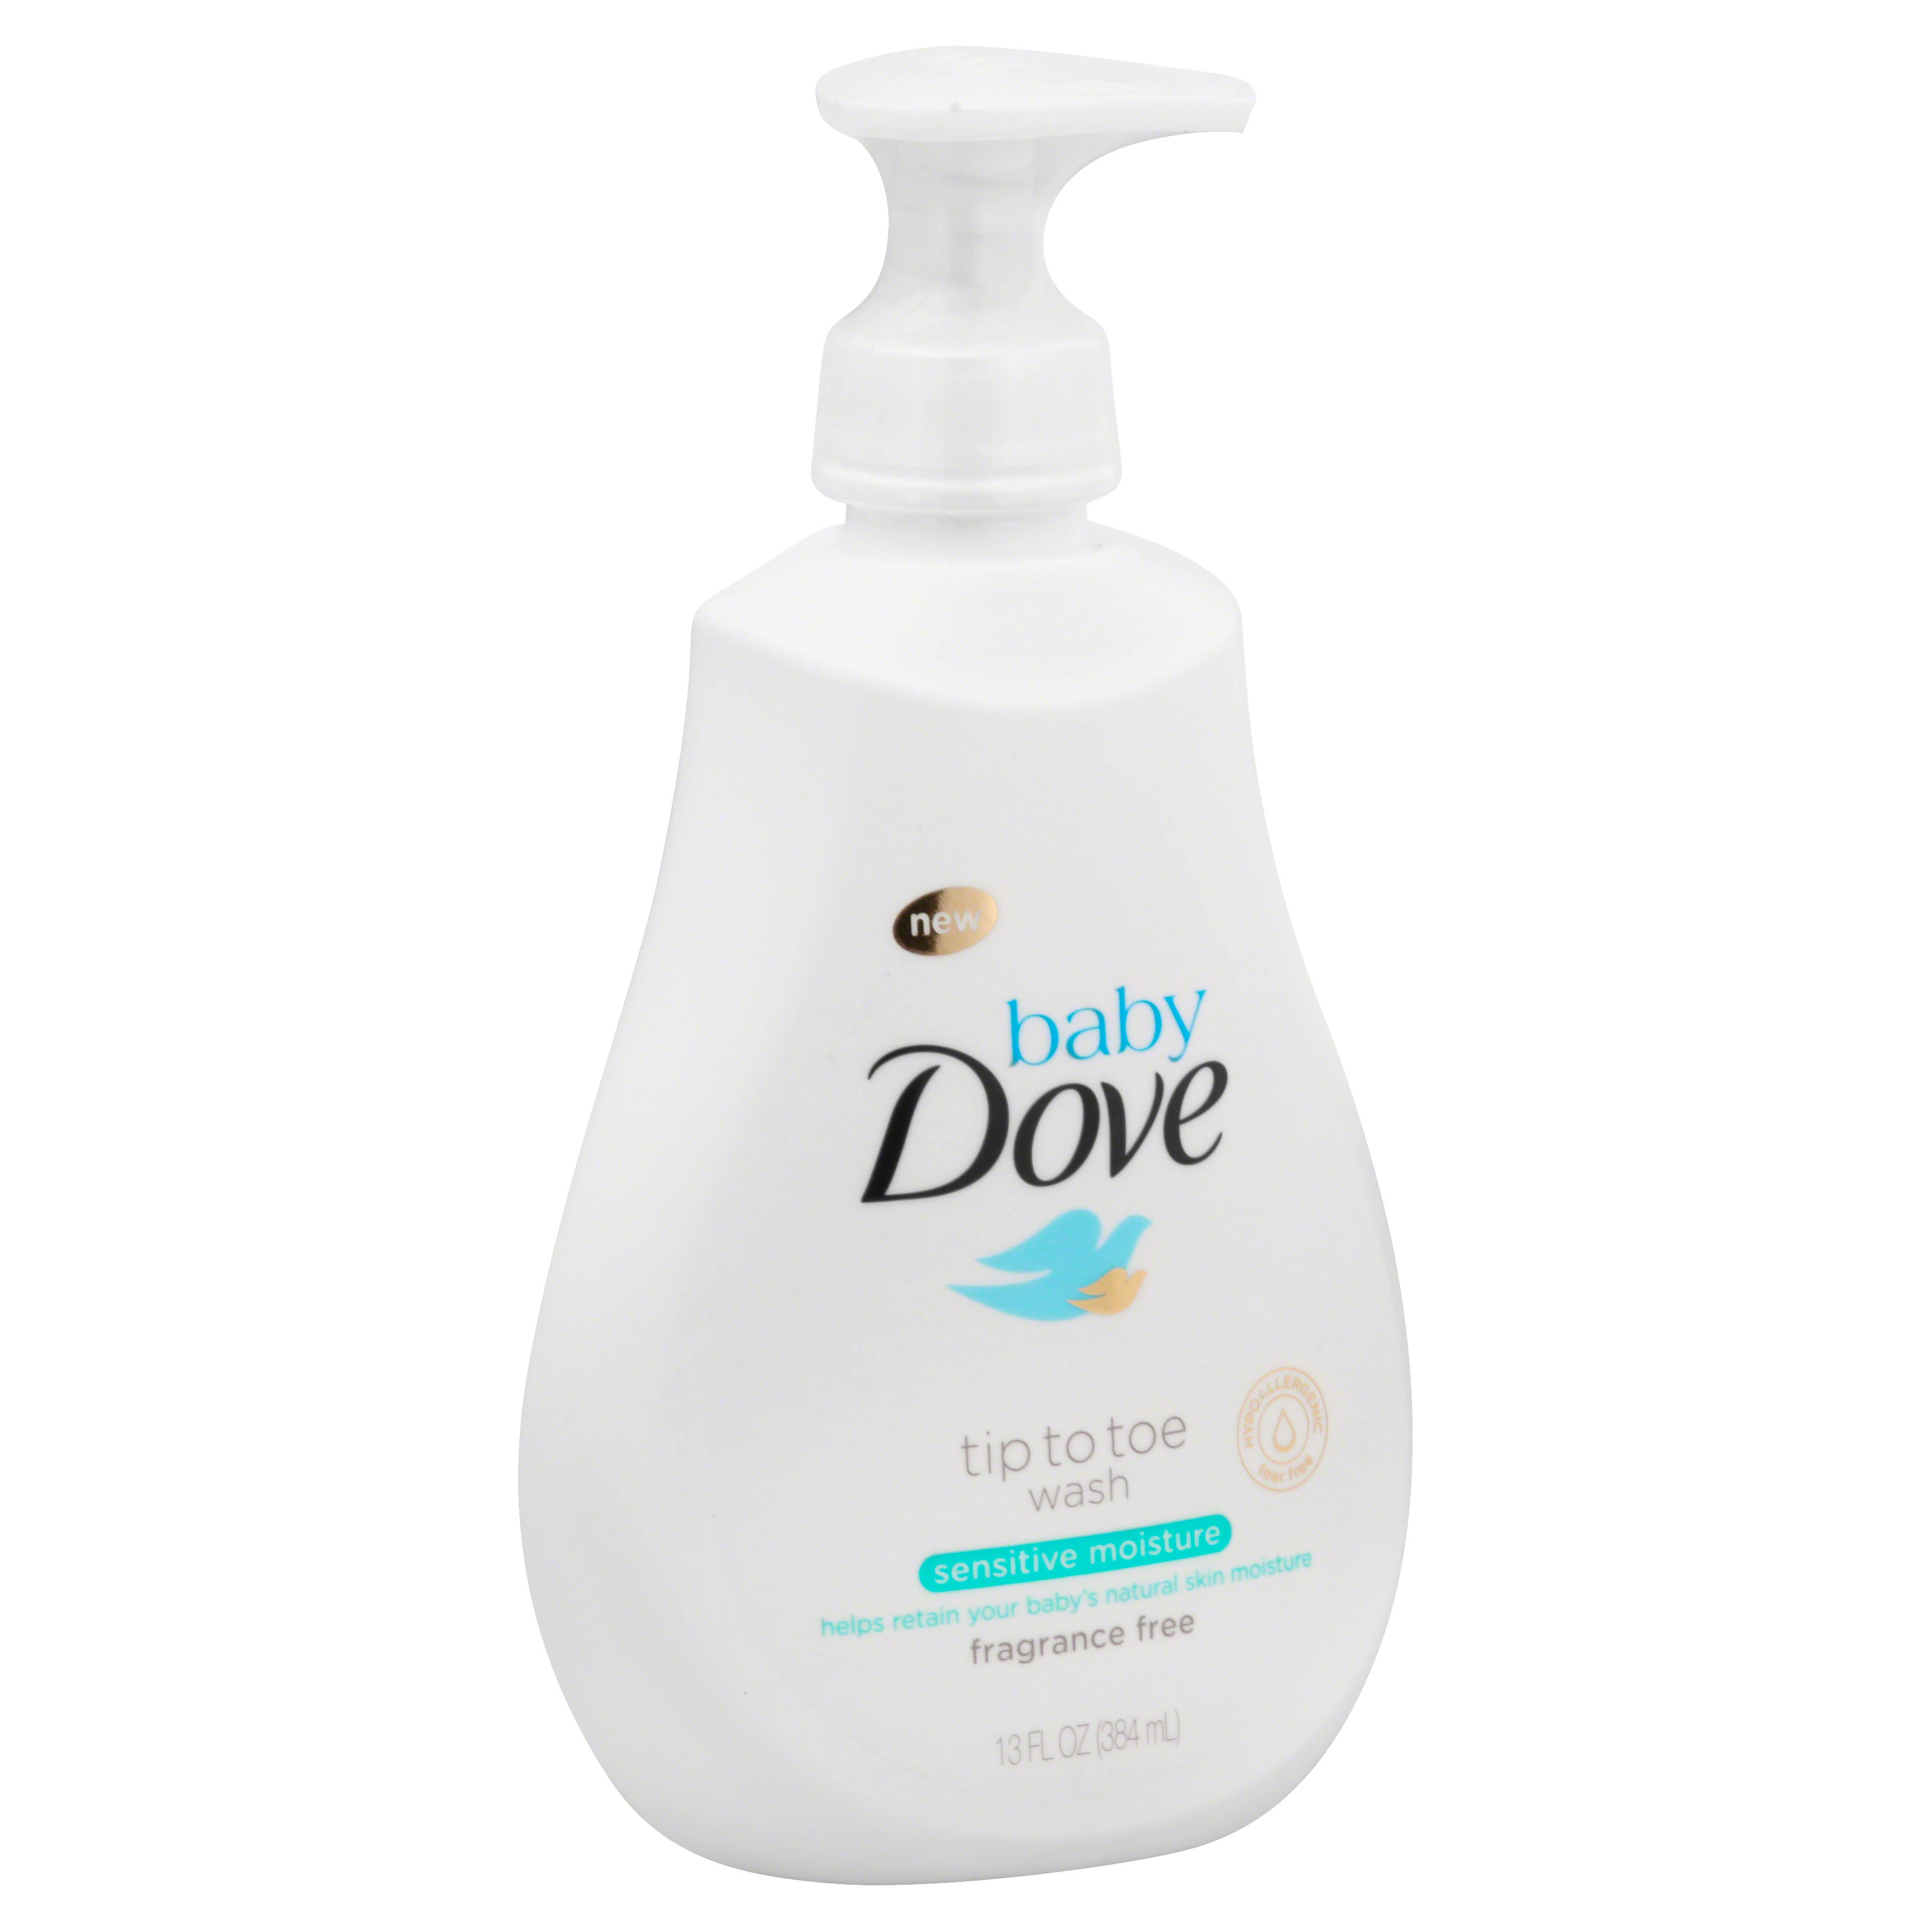 Baby Dove Sensitive Moisture Fragrance Free Tip to Toe Wash - 13 oz